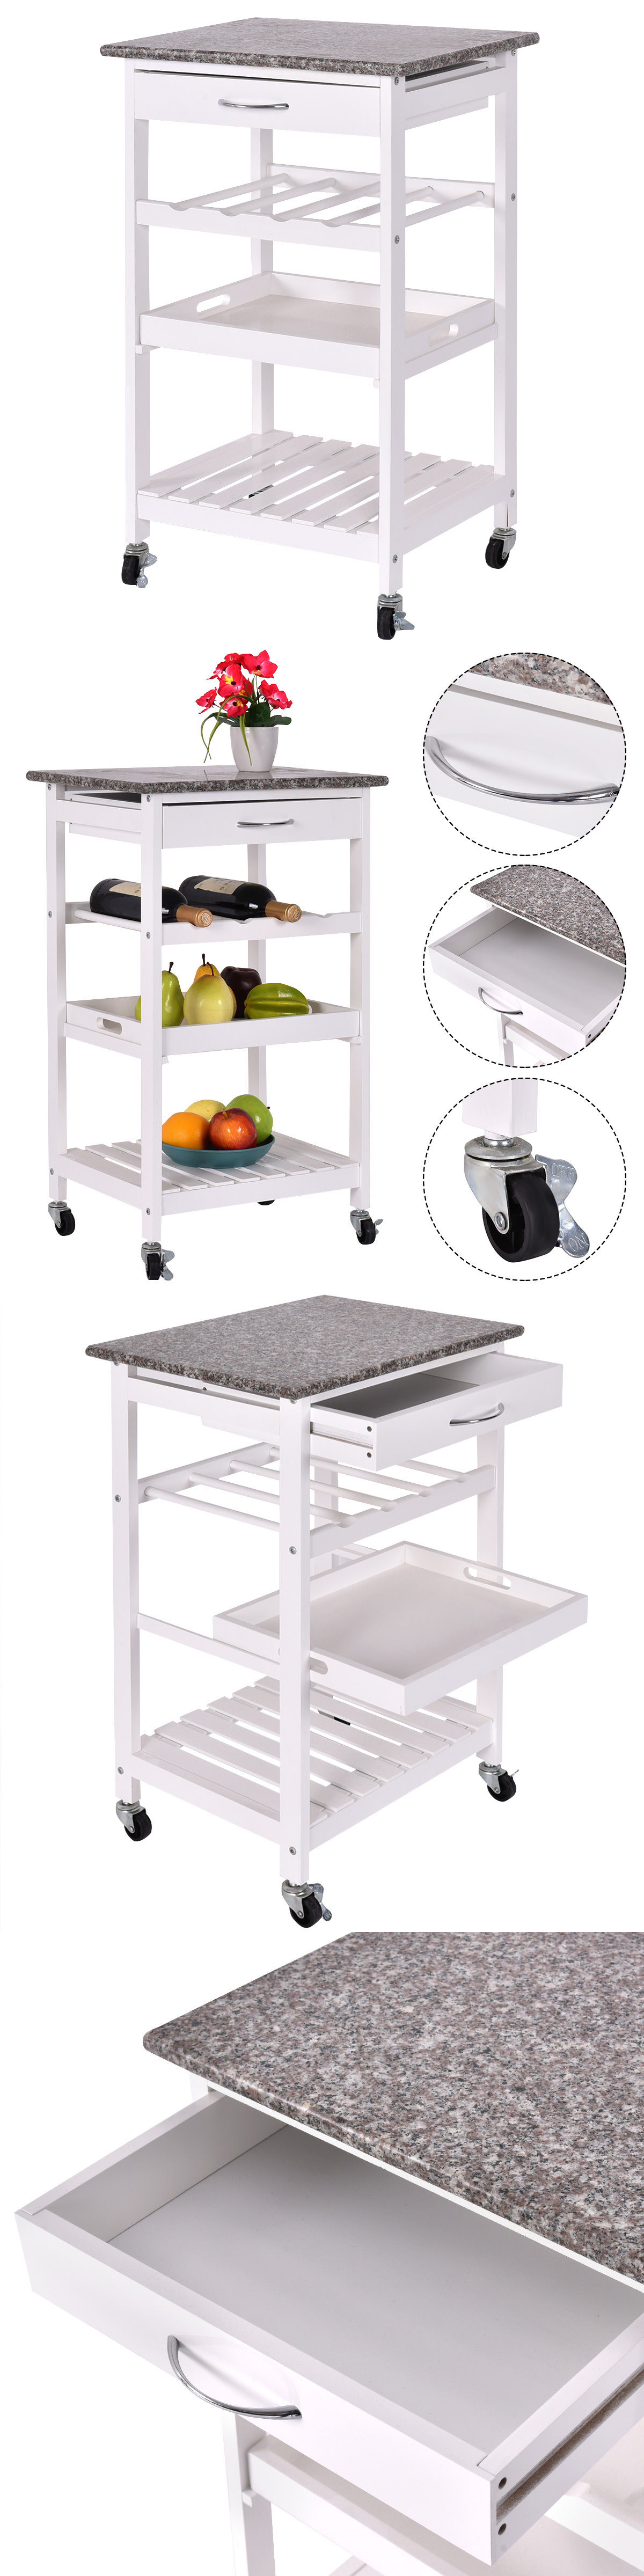 kitchen islands kitchen carts 115753 4 tier rolling wood kitchen